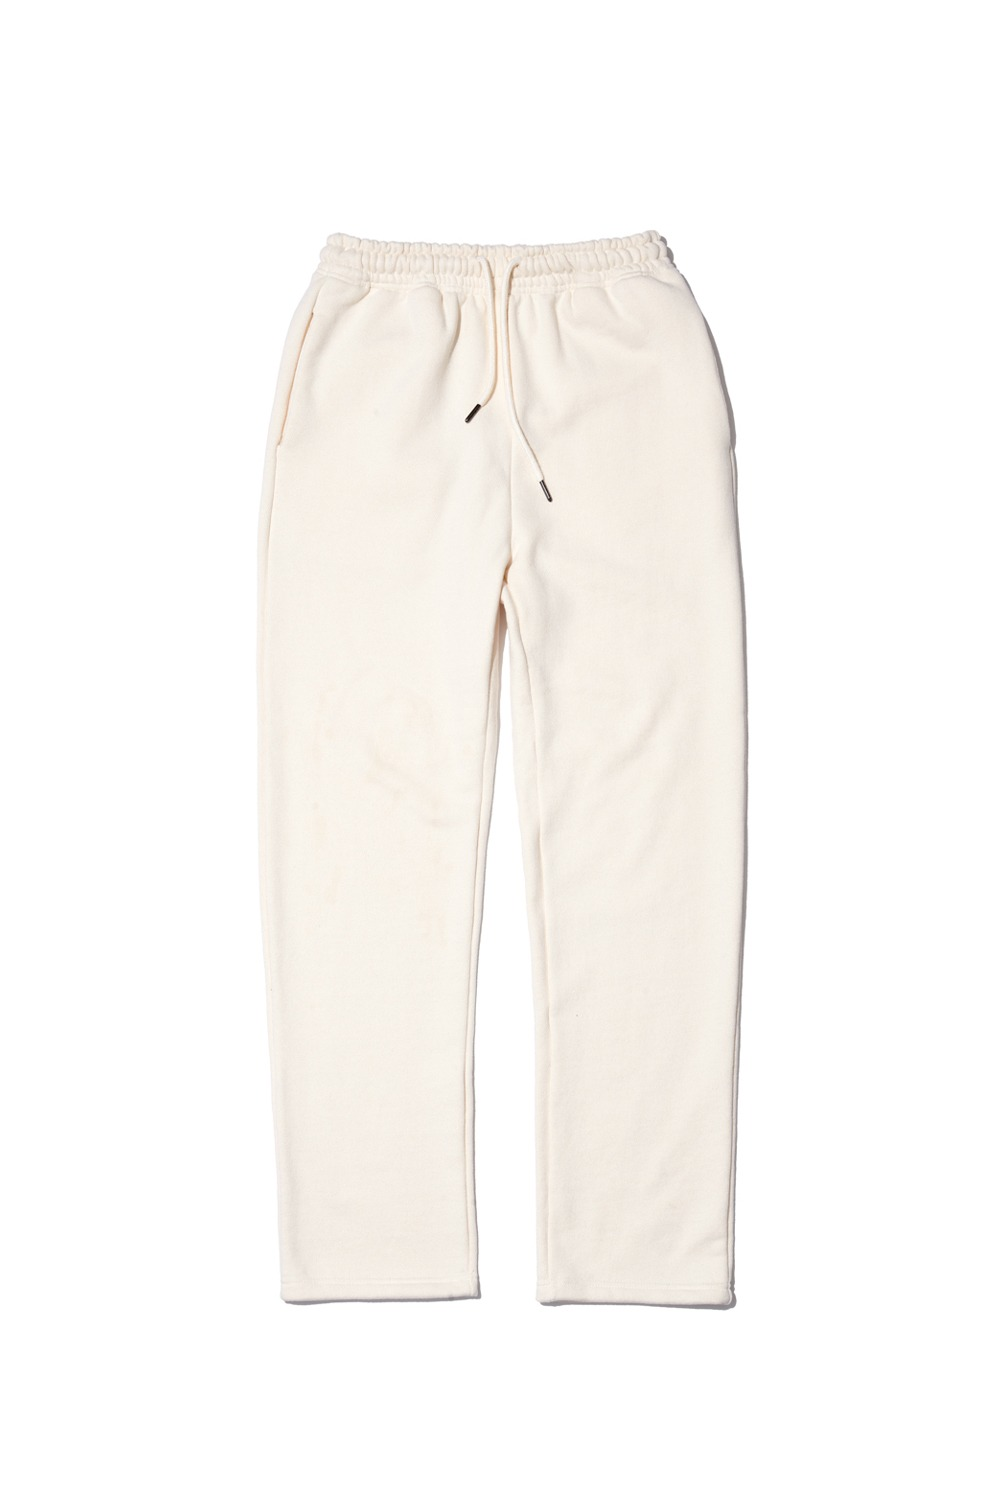 COLLECTIVE OG SWEAT PANTS_cream